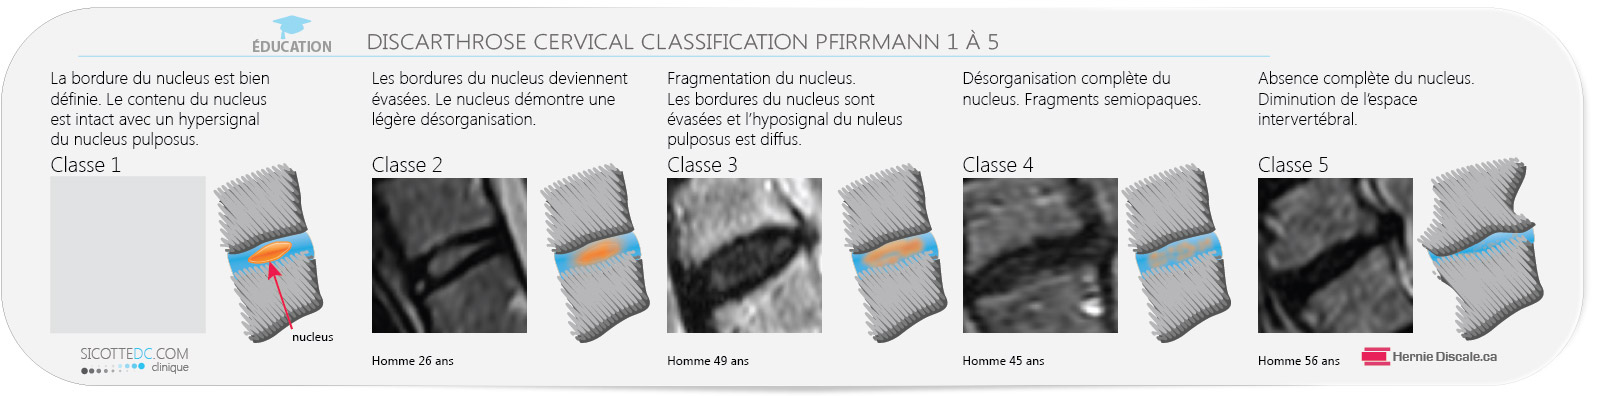 La classification Pfirrmann pour hernie discale cervicale.